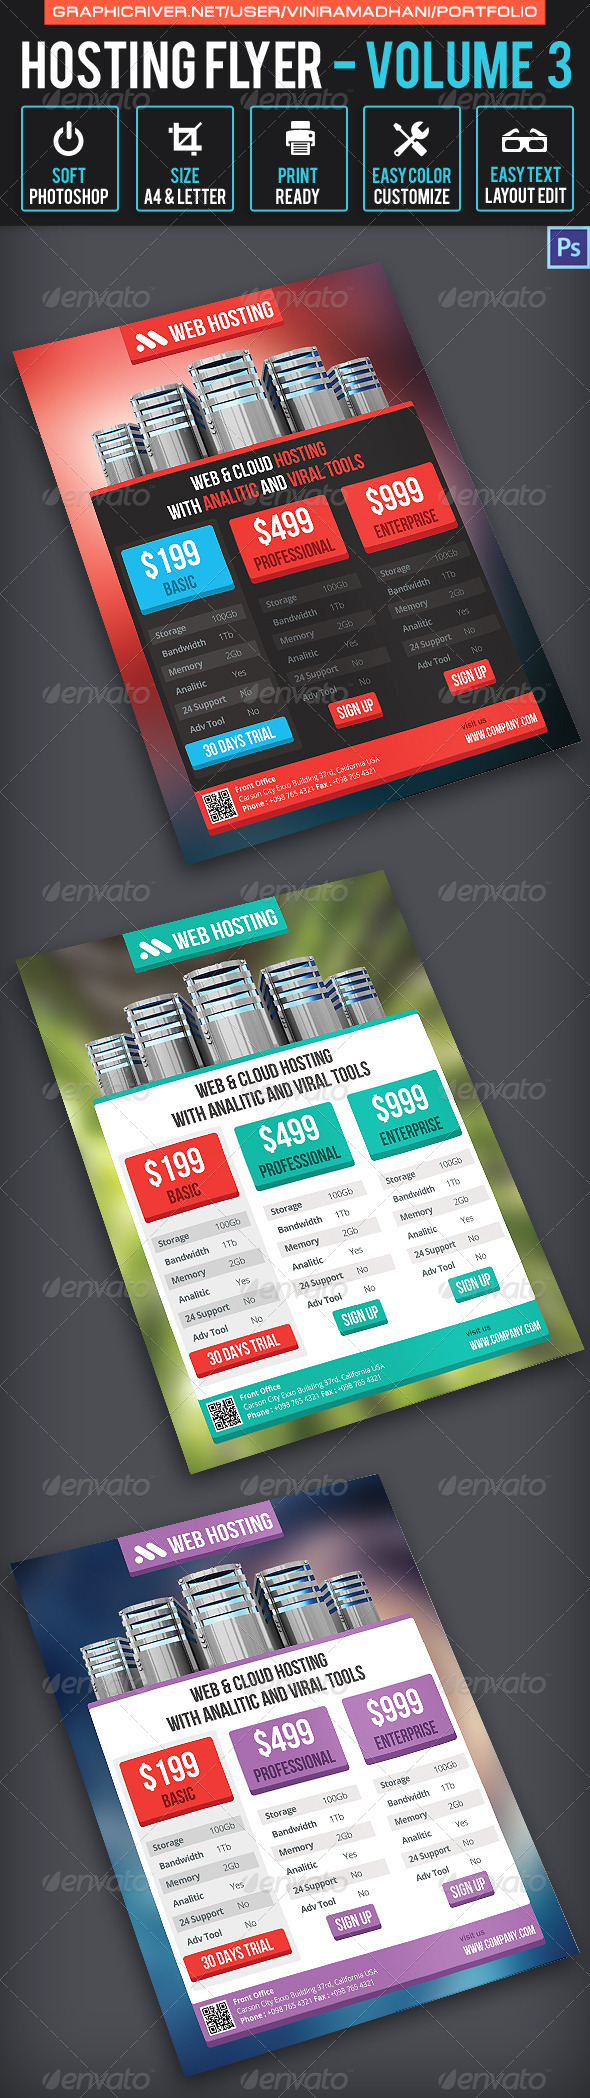 GraphicRiver Hosting Flyer Volume 3 7171104